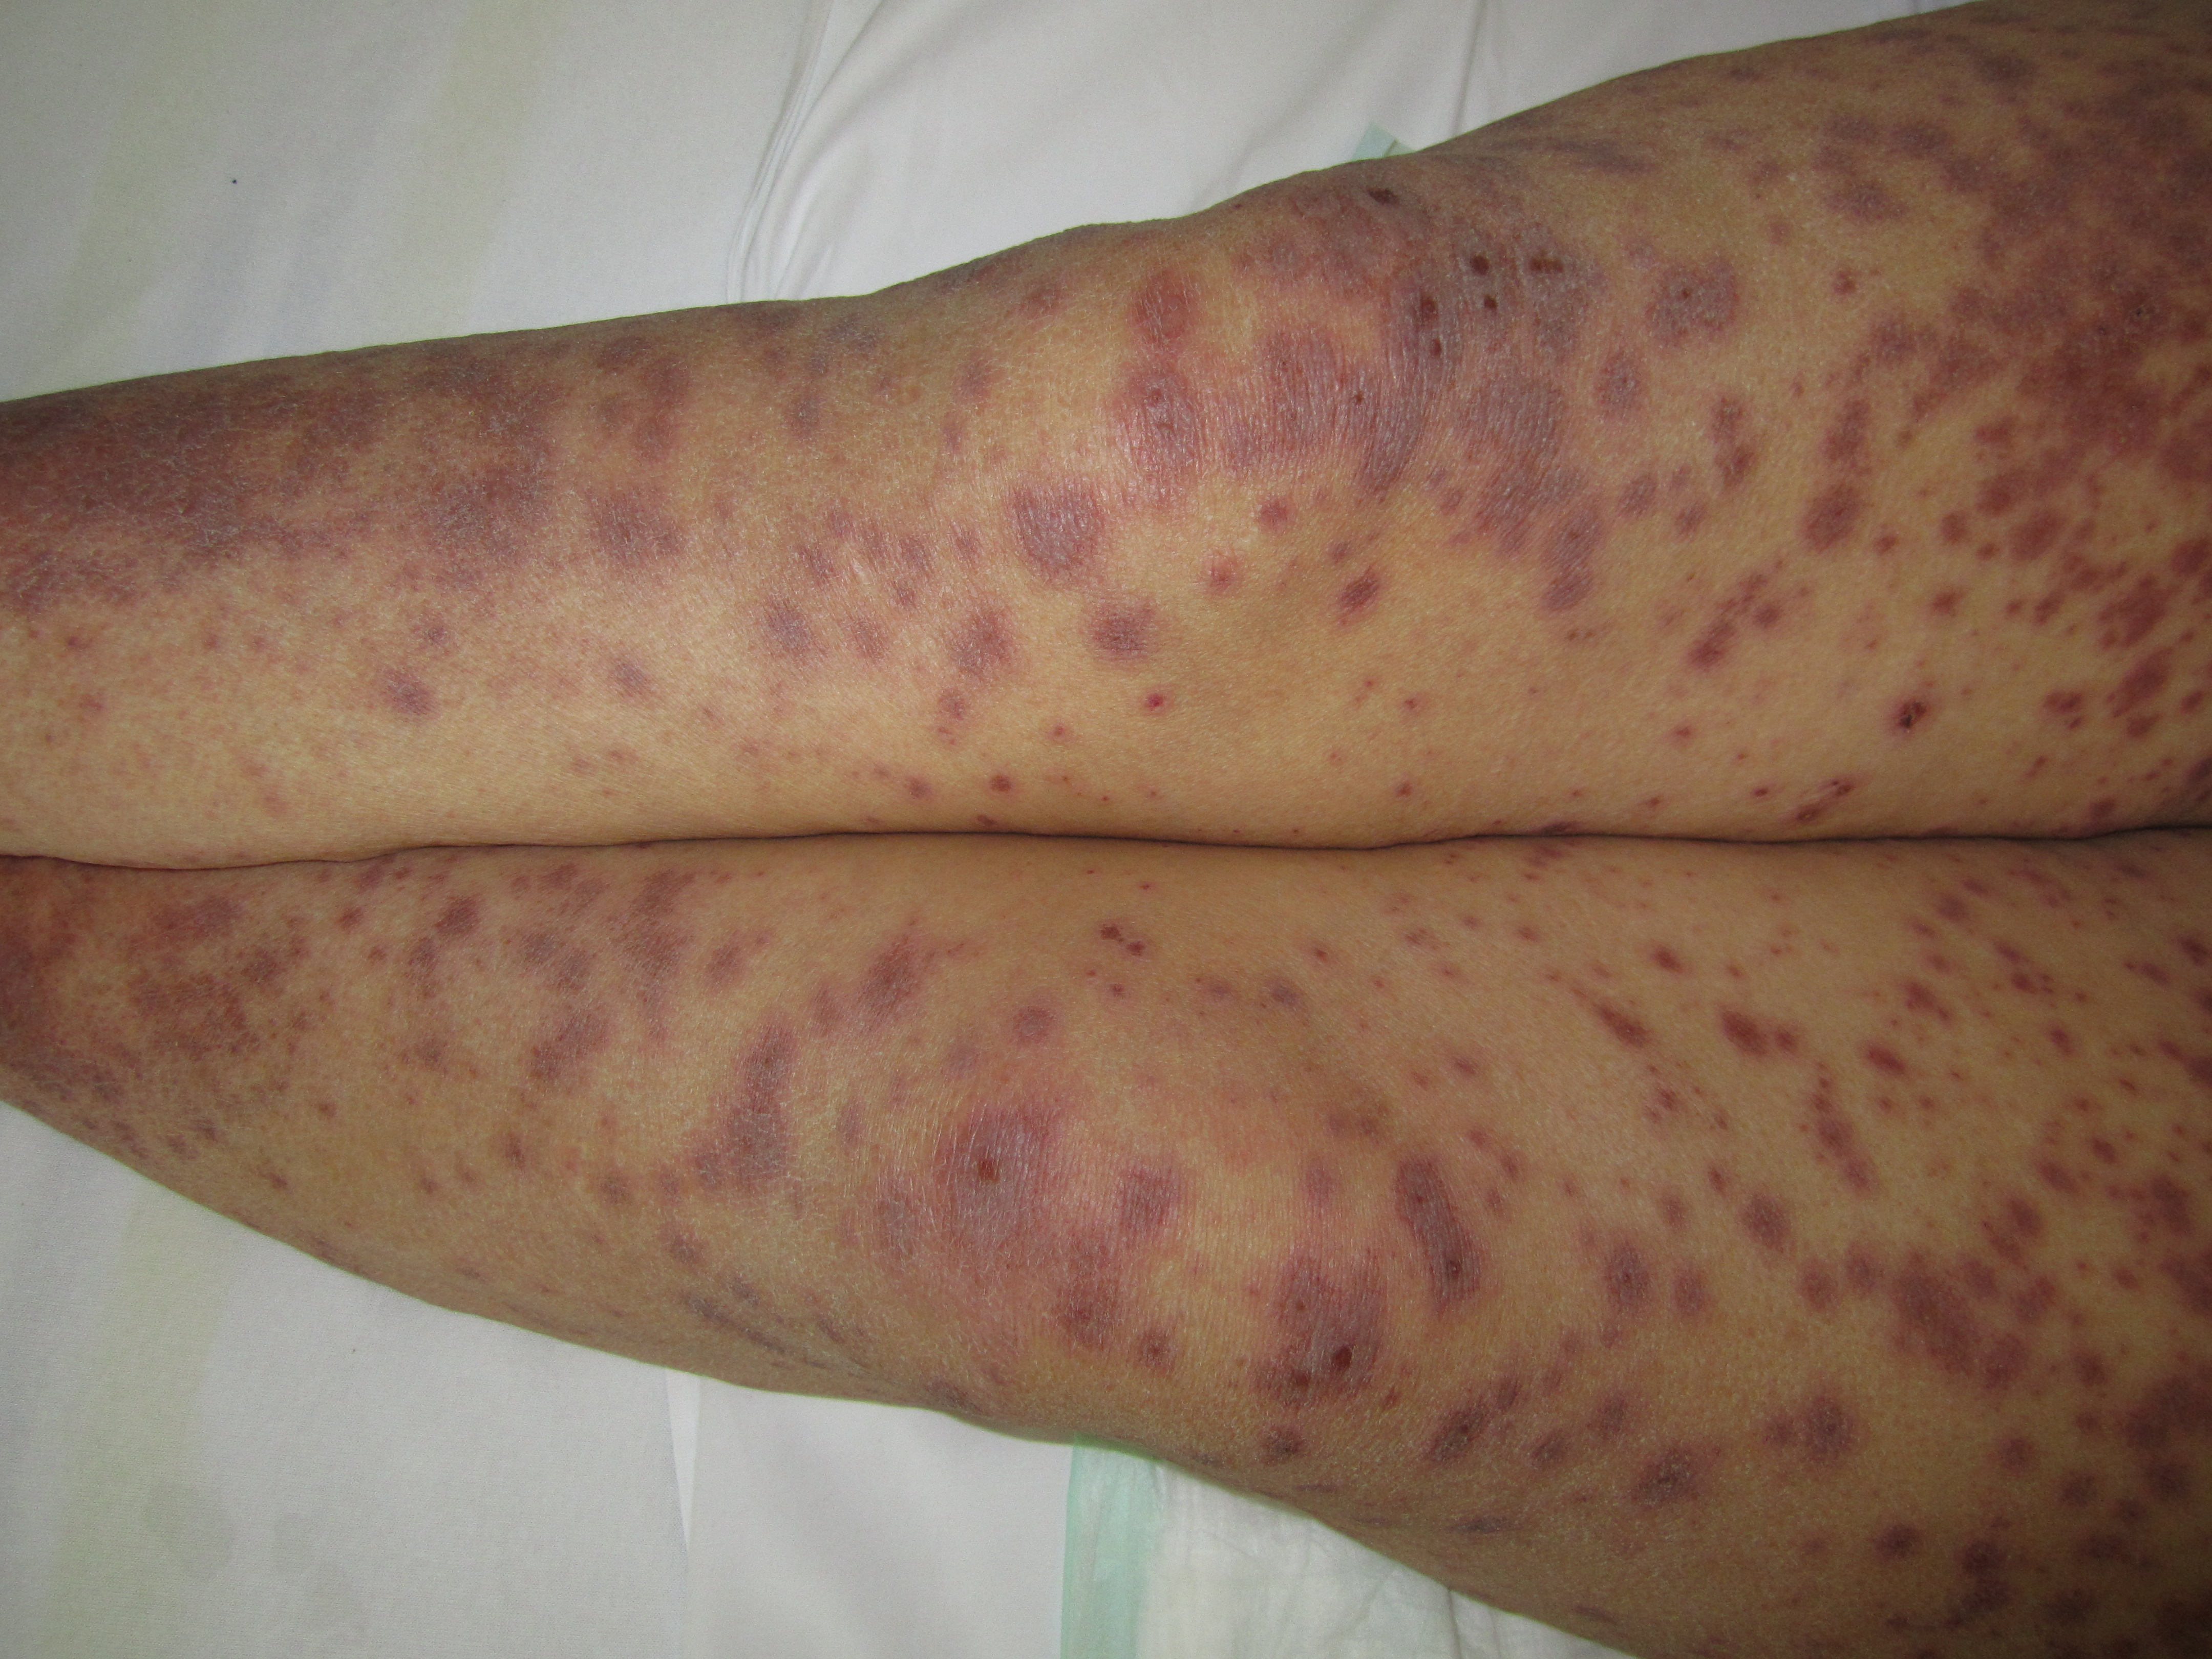 Erythematous, Purpuric, Macules, targetoid lesions, Stevens Johnson Syndrome